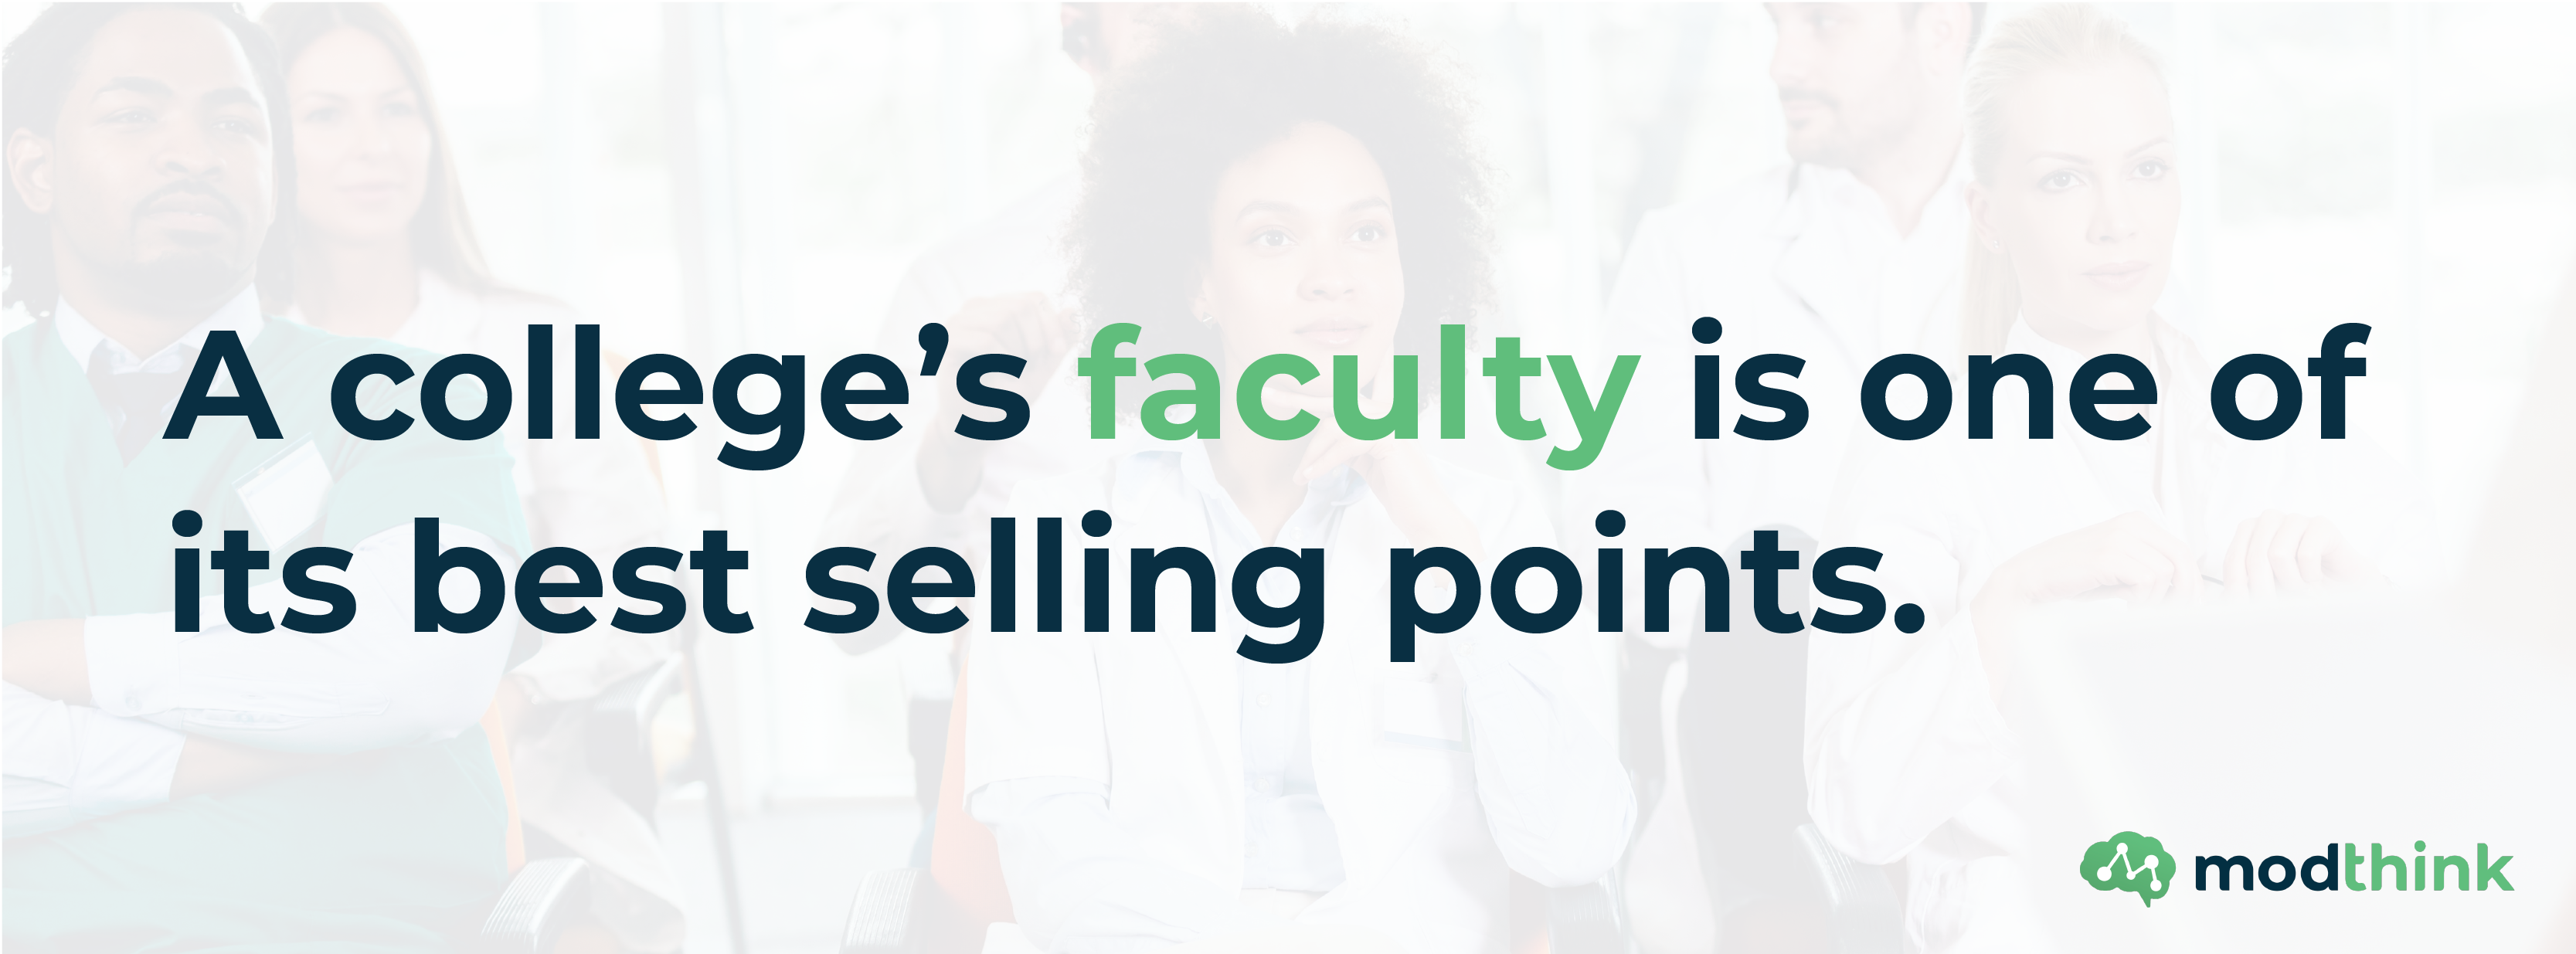 A college's faculty is one of its best selling points.